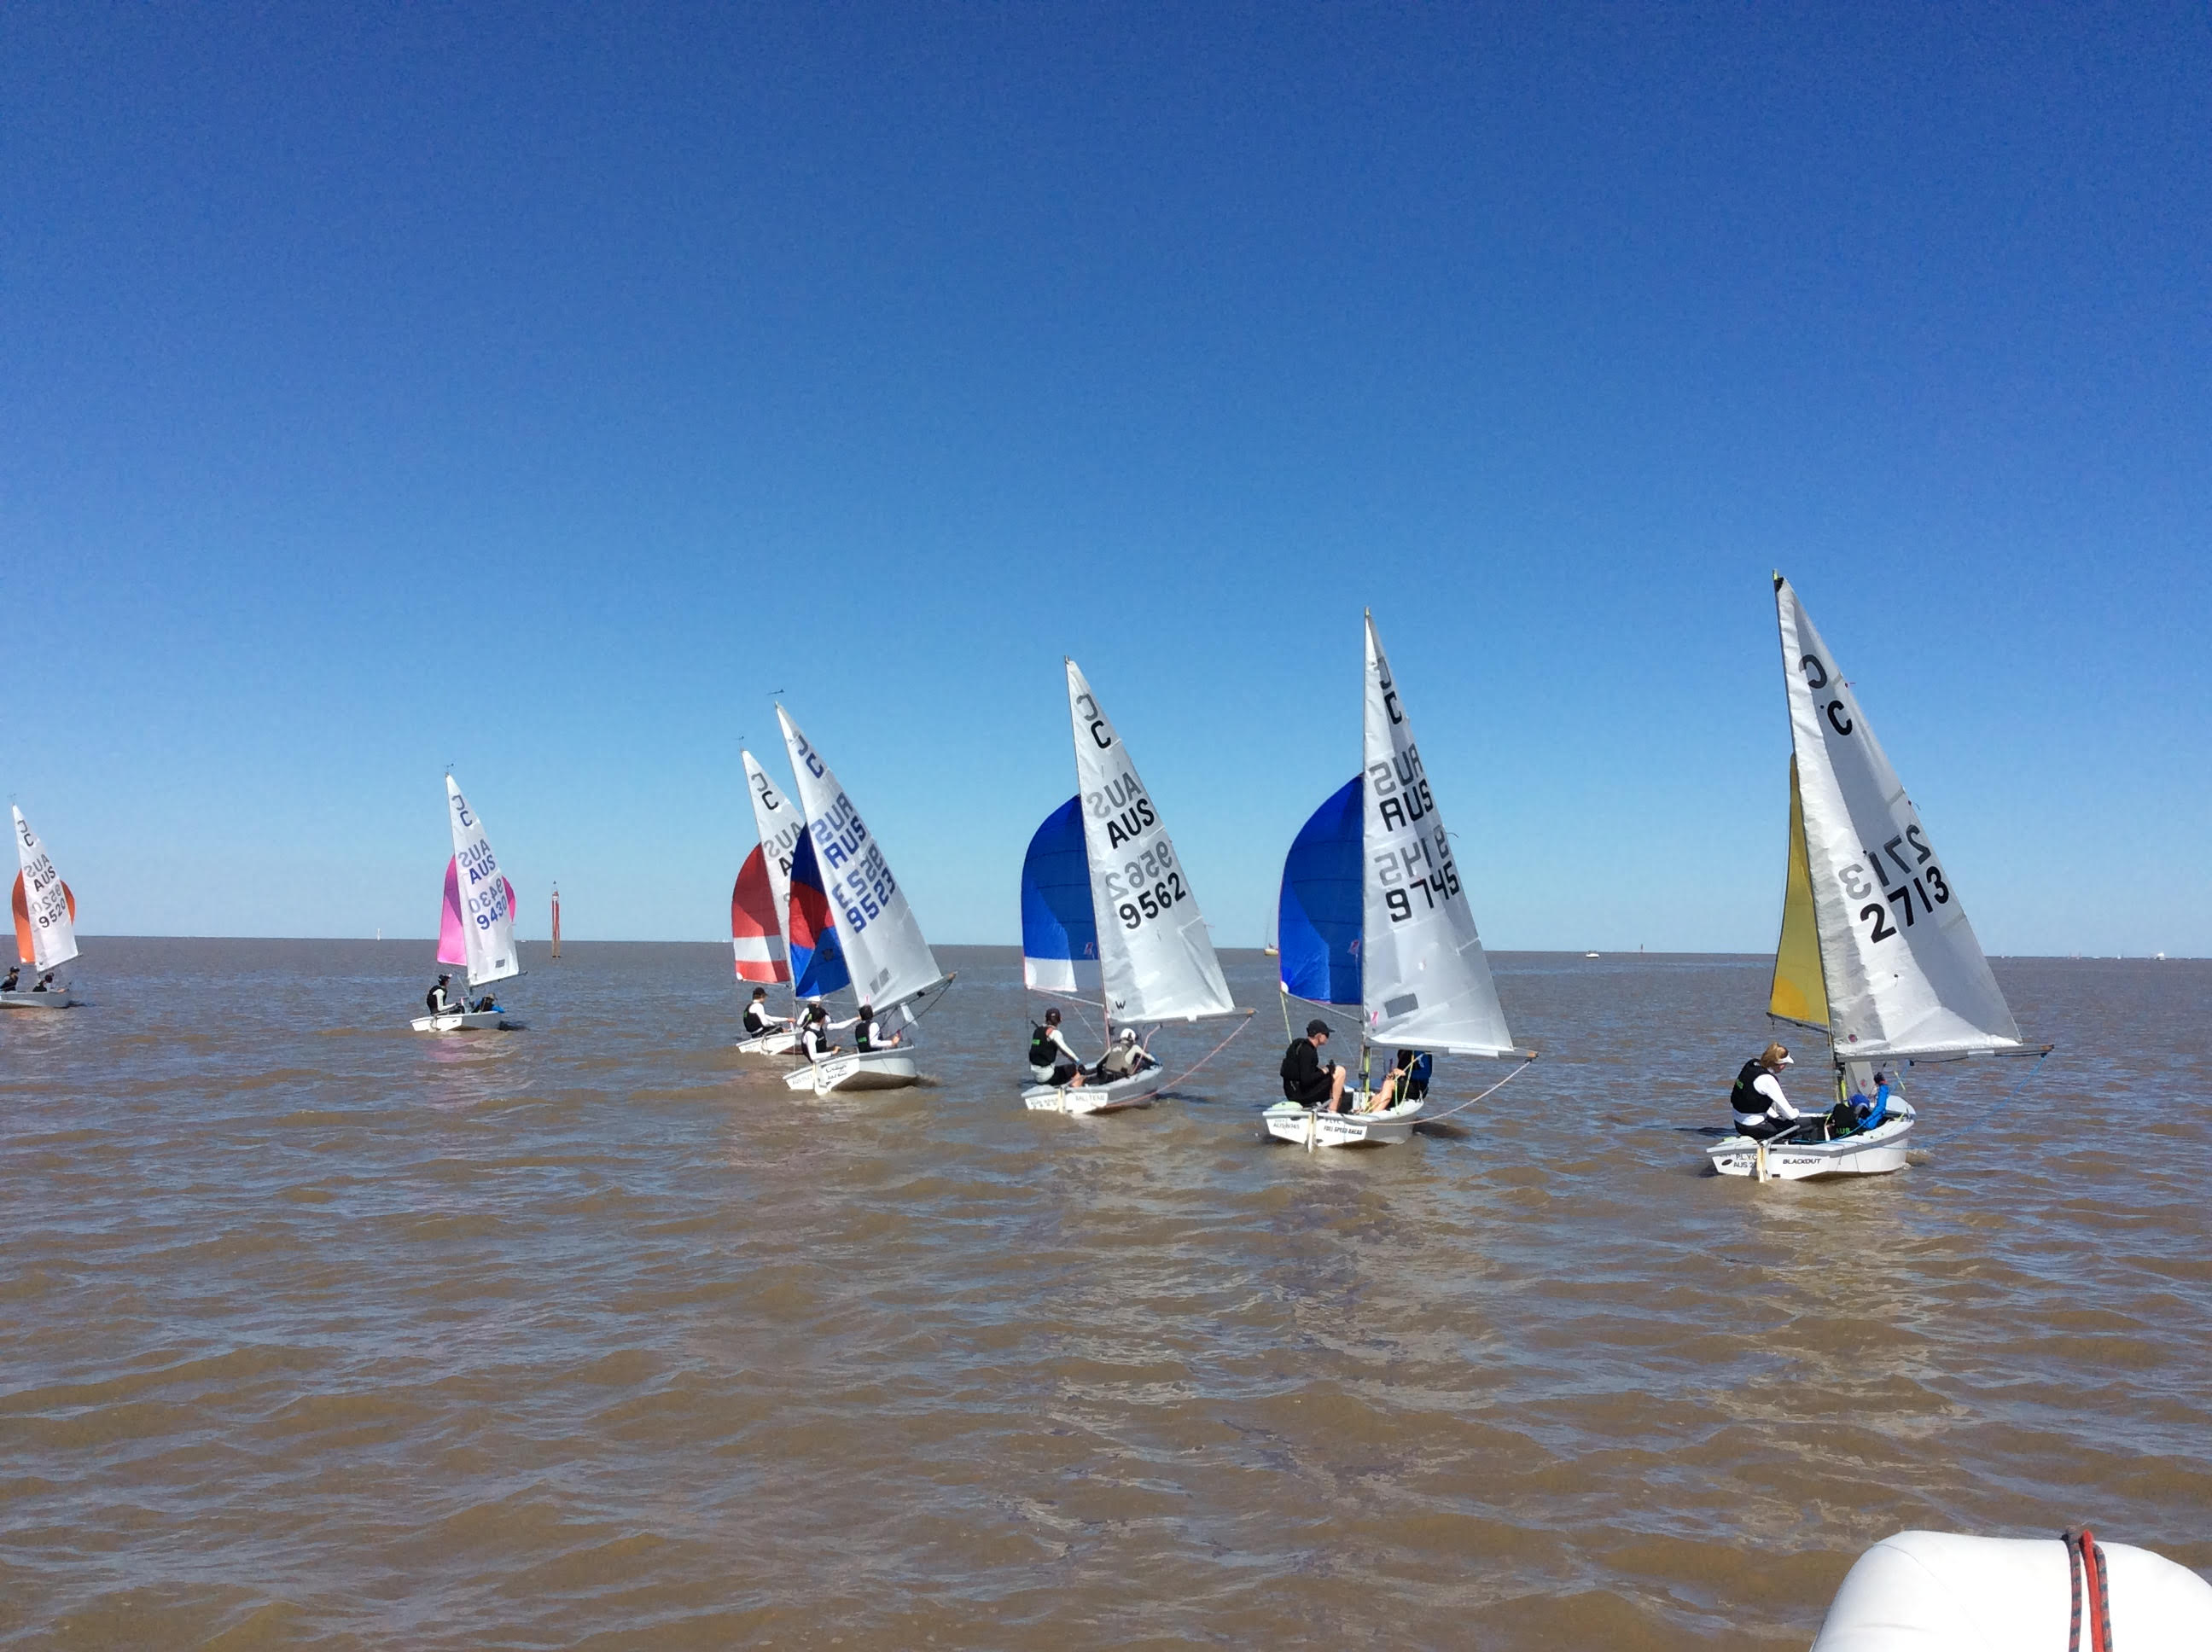 The Australian team of nine boats has been training in light airs at Club Nautico Albatros in Argentina.